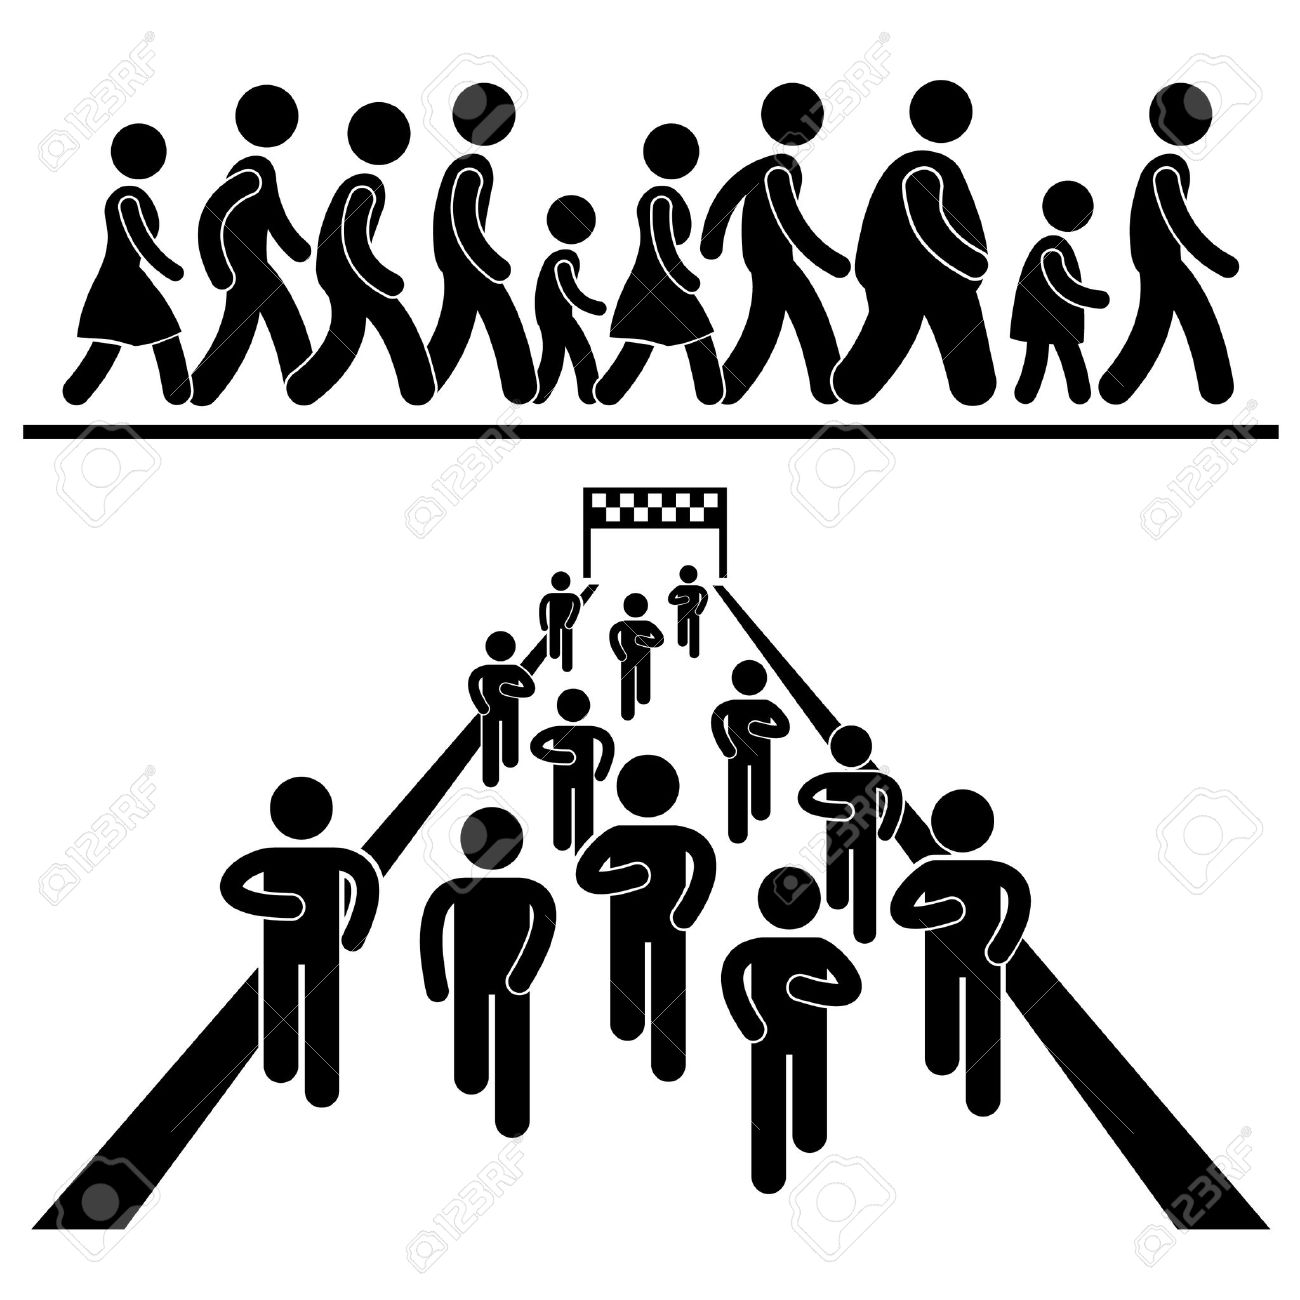 Community Walk and Run Marching Marathon-Community Walk and Run Marching Marathon Rally Stick Figure Pictogram Icon  Stock Vector - 17968700-20